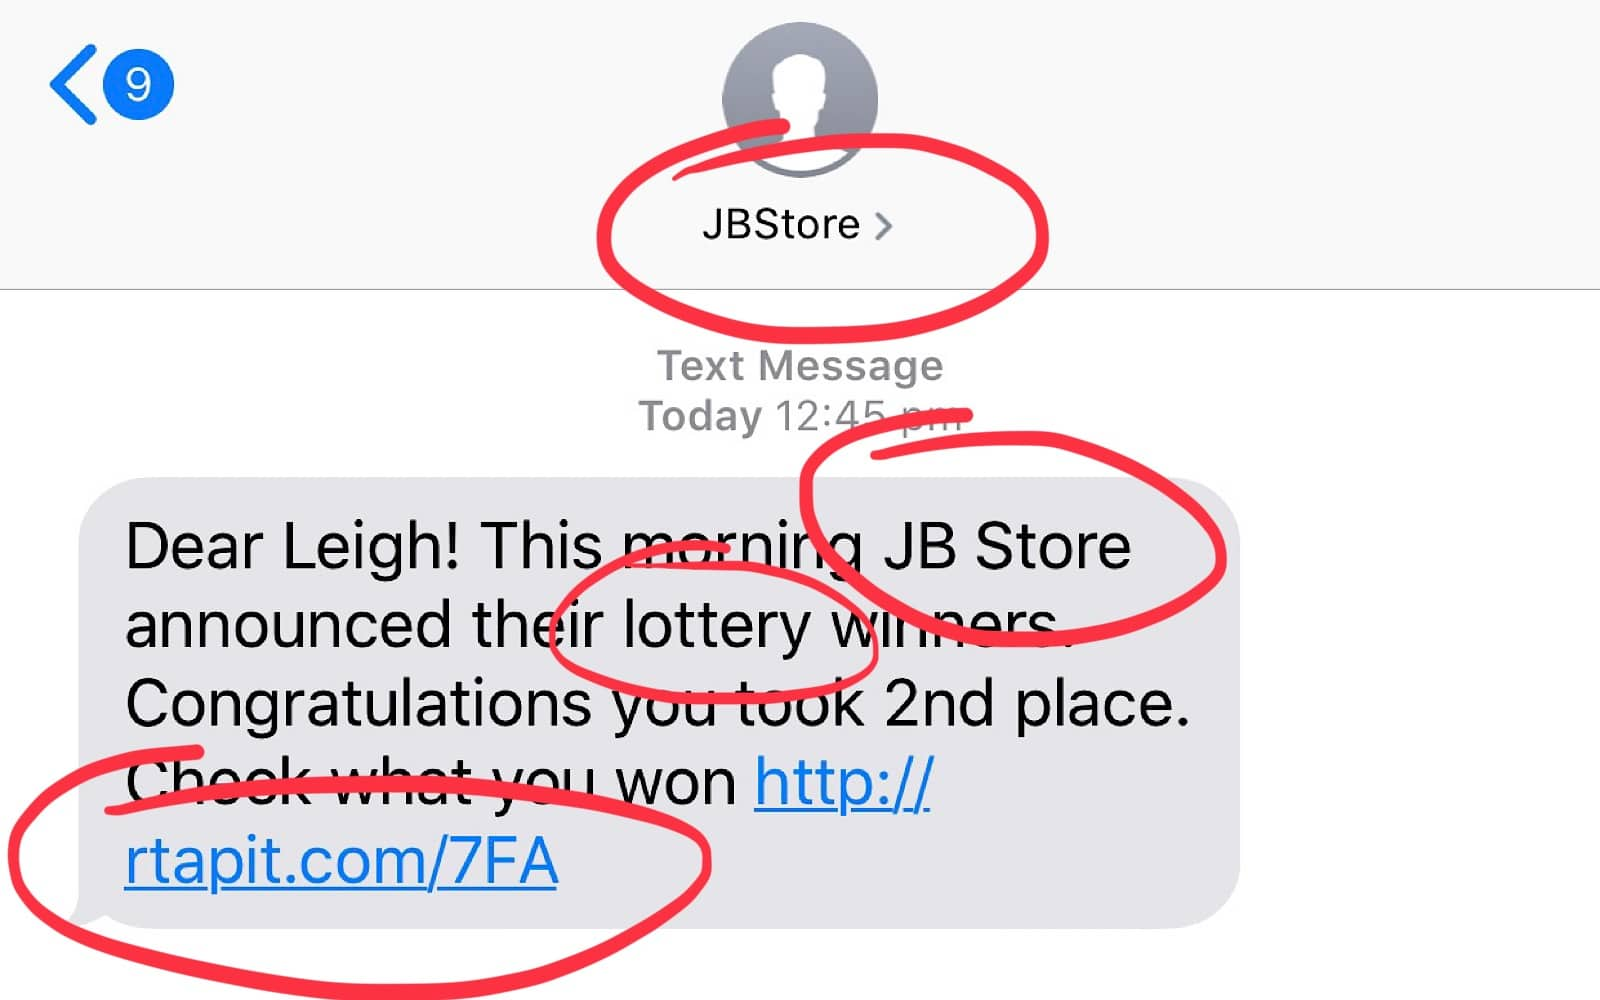 Some of the things worth paying attention to in a scam message.